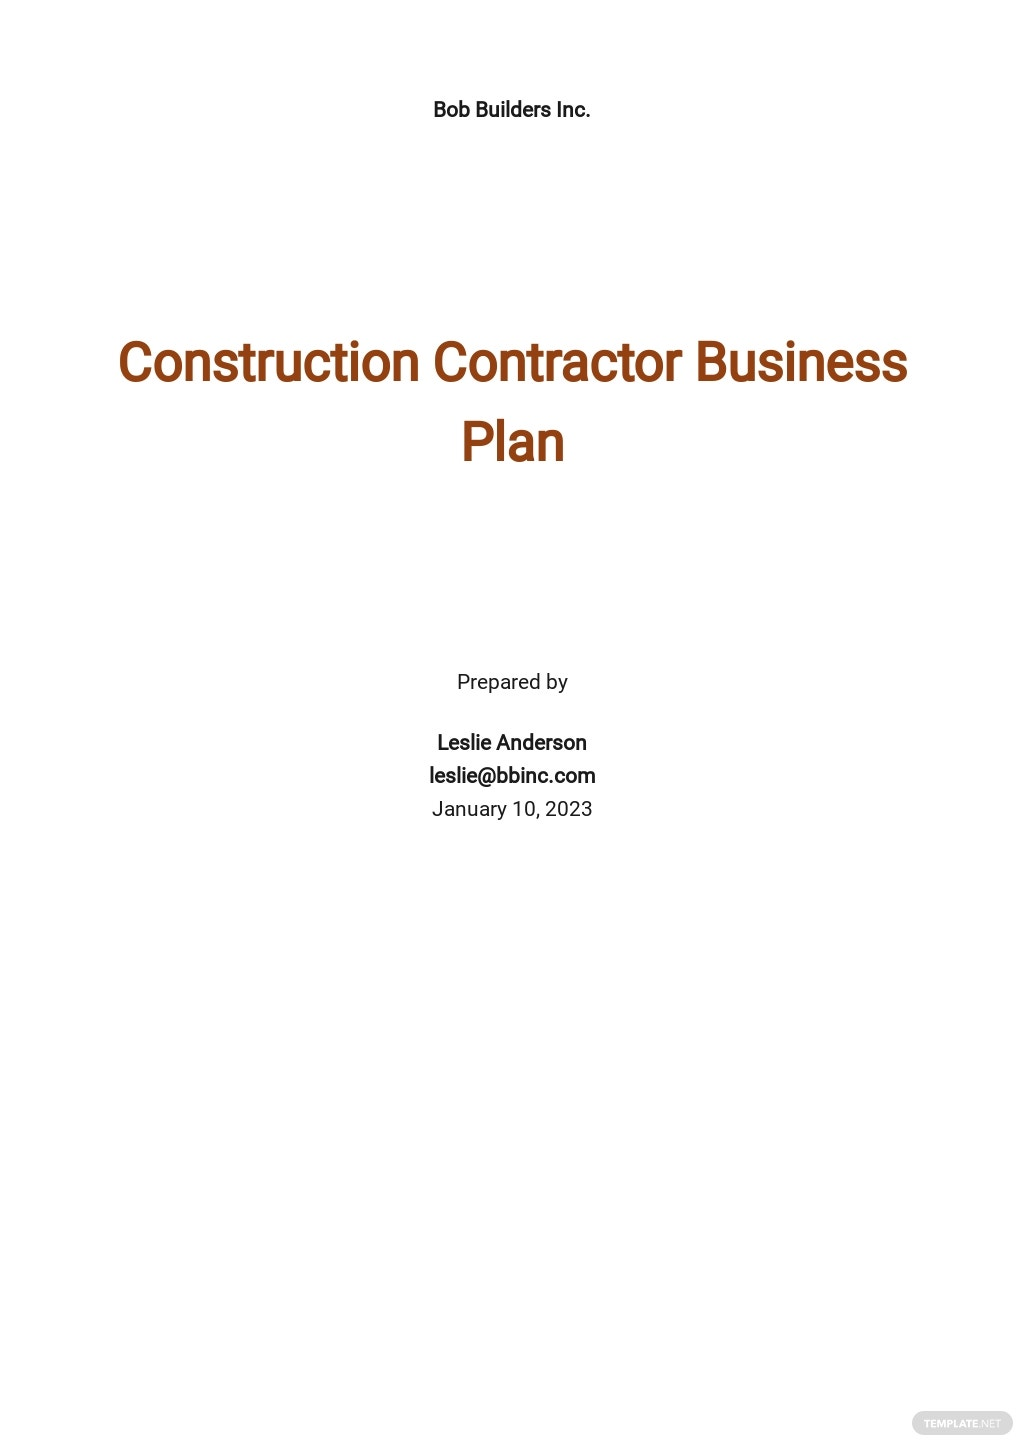 Construction Contractor Business Plan Template